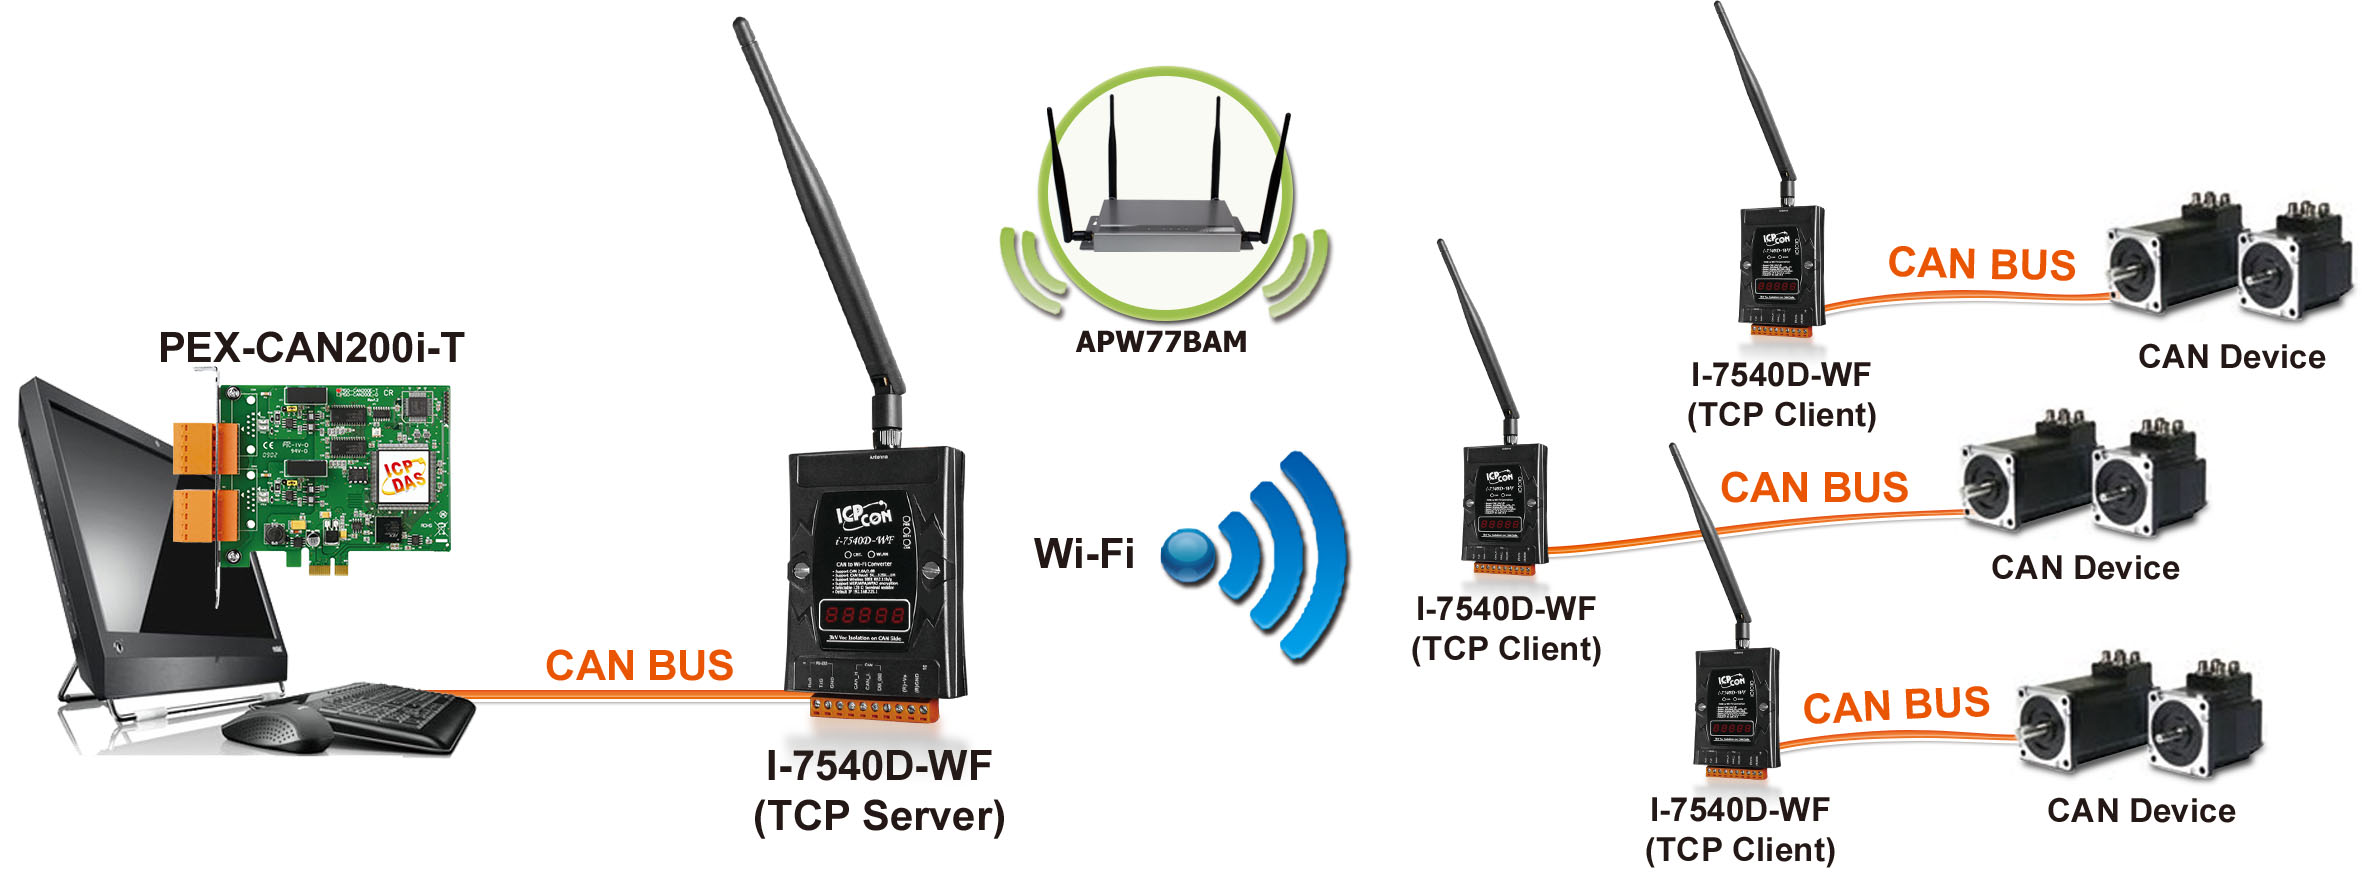 Icp Das M2m Wired To Wireless Solutions Ethernet Wlan Zigbeeca Router Network Diagram Controller Area Canis A Message Based Protocoldesigned Specifically For Automotive Applications But Now Also Used In Other Areas Such As